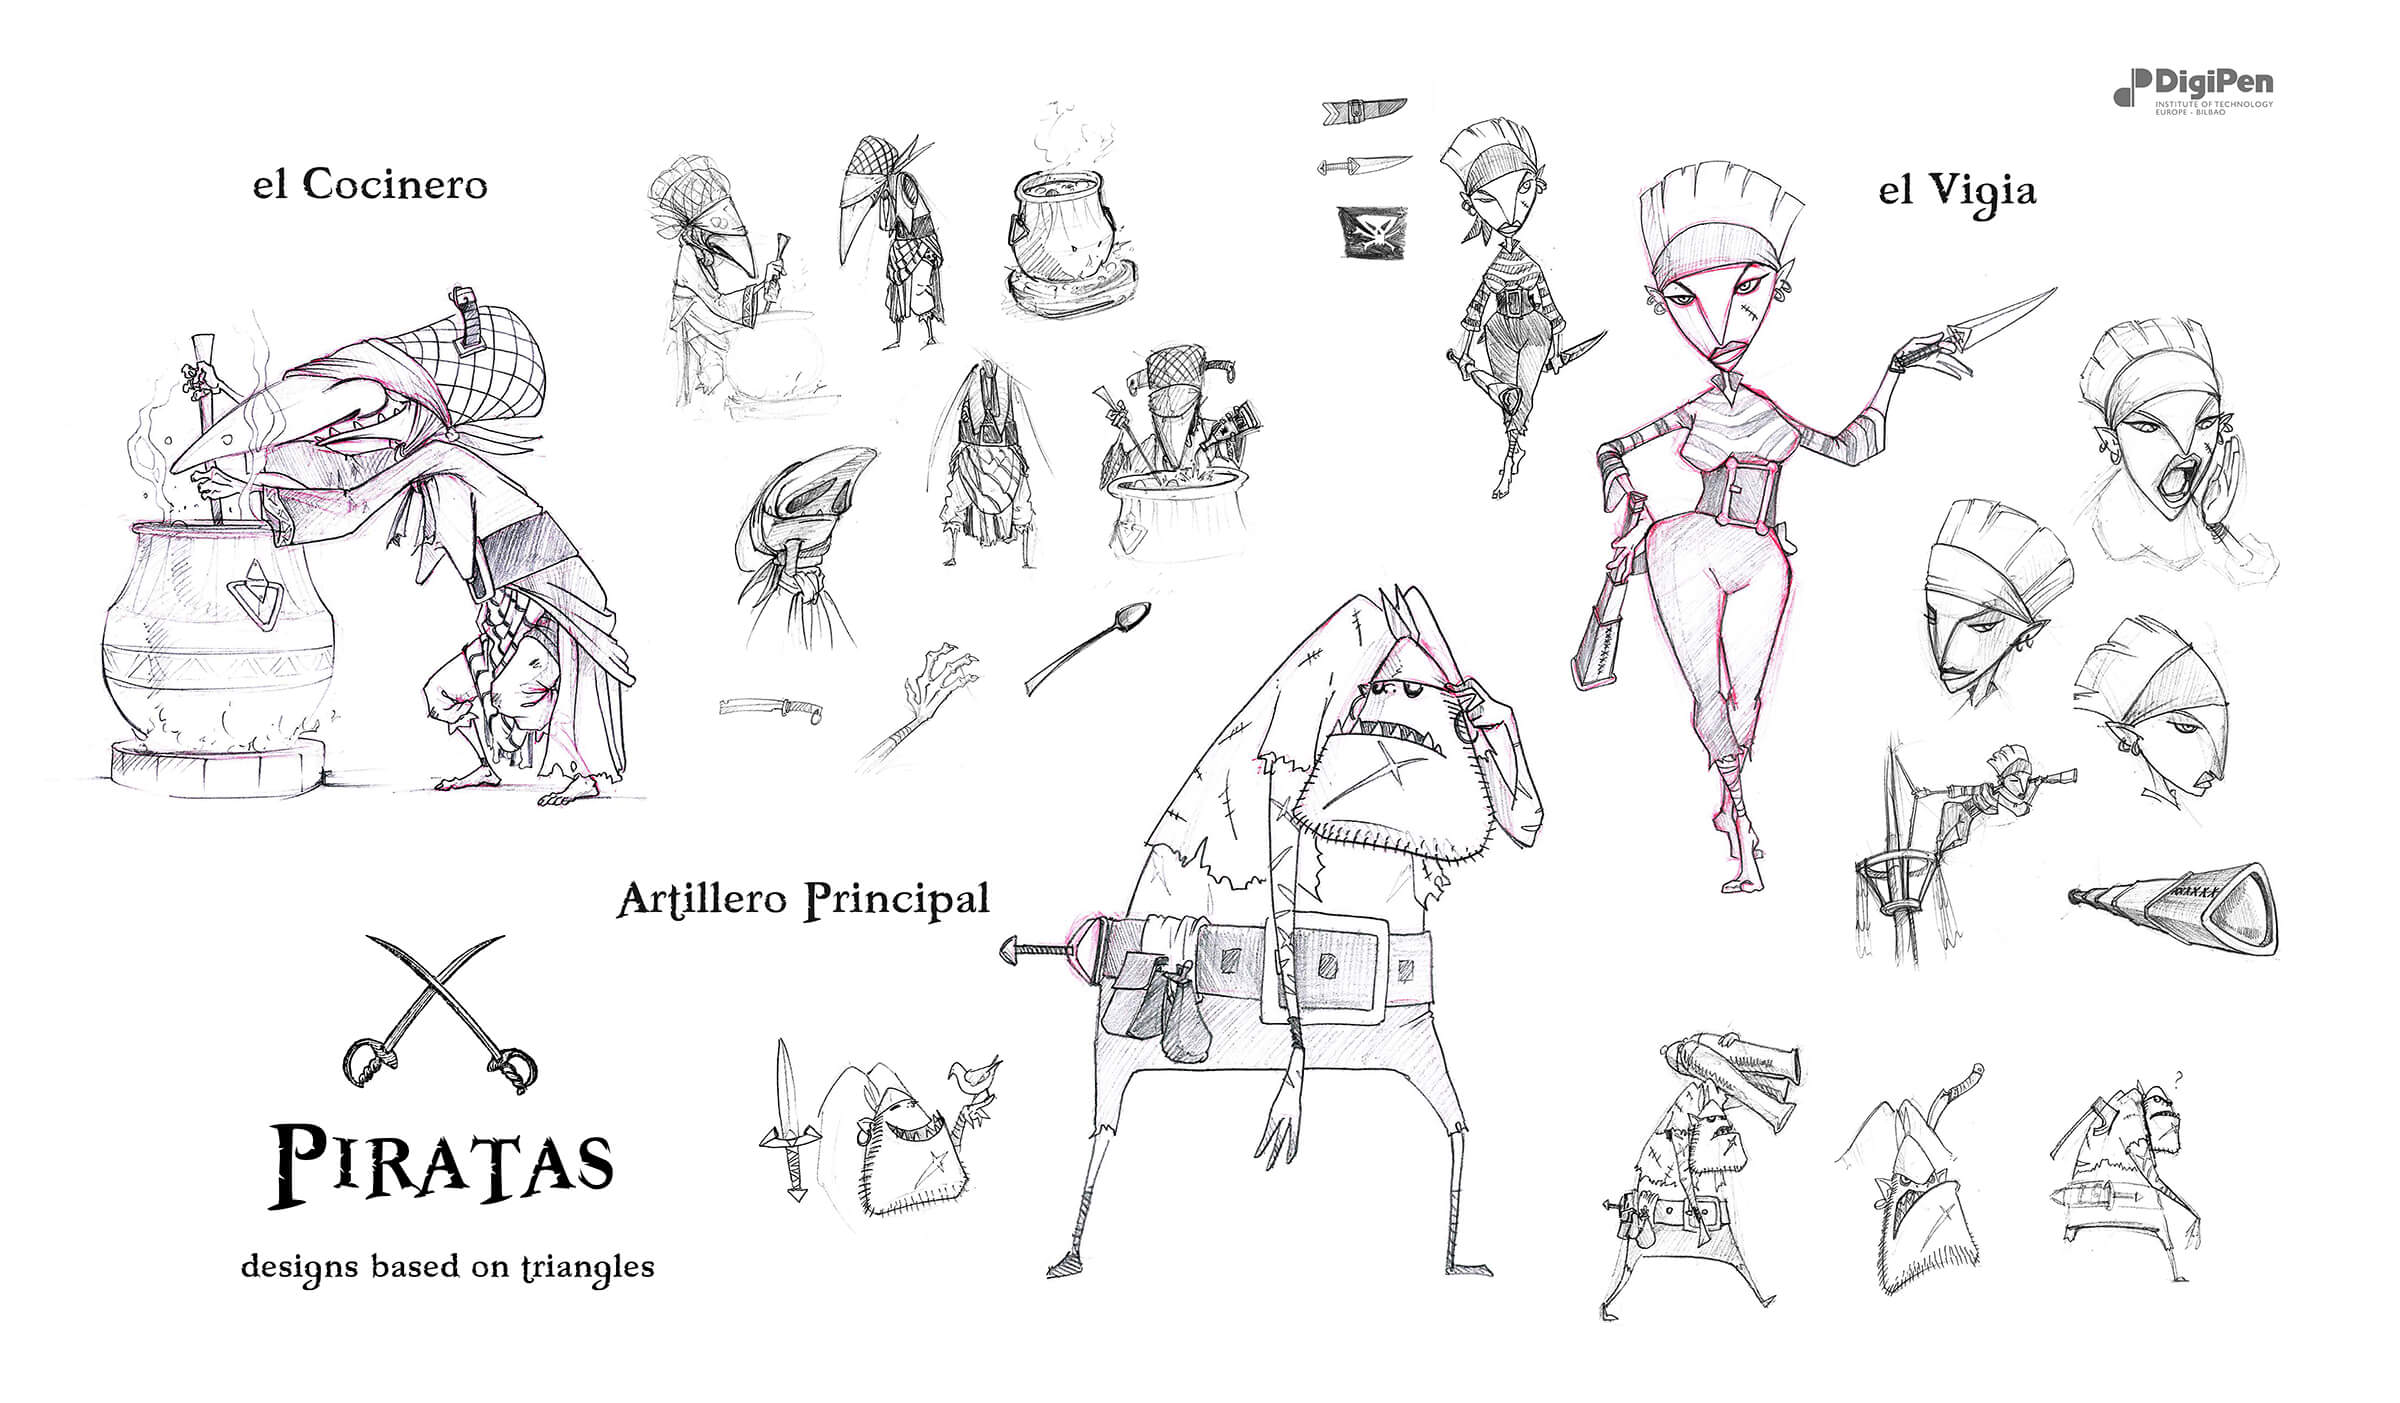 Stylized black-and-white sketches of an old cook, an angular watchwoman, and a clumsy pirate artilleryman.